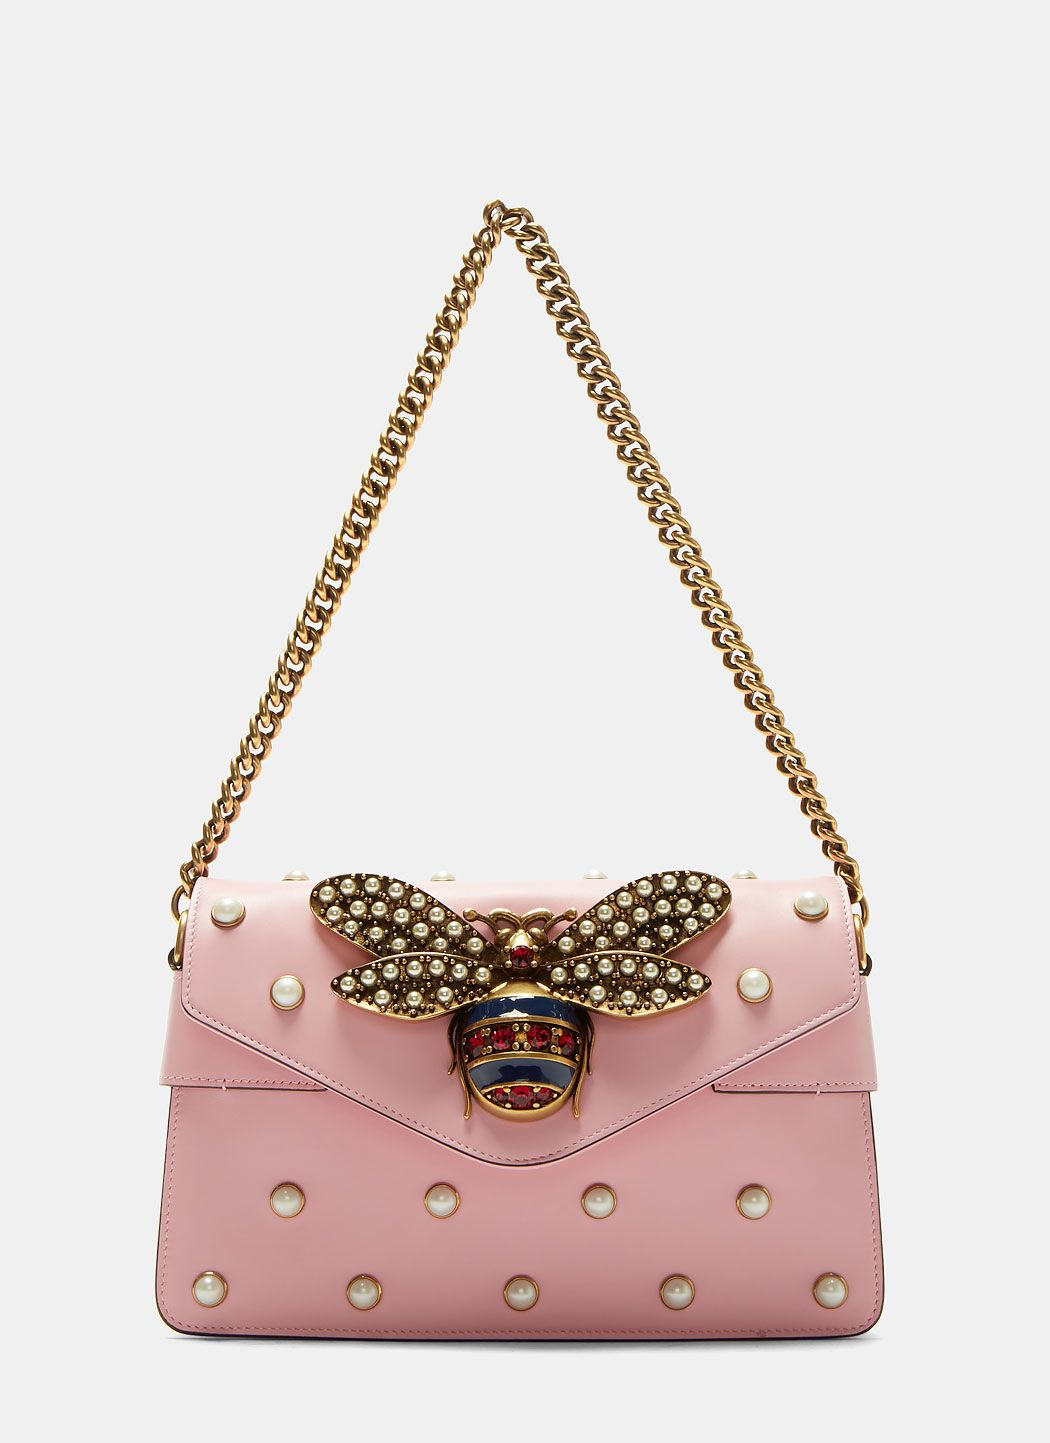 d02e7ff80 GUCCI Broadway Pearl Studded Bee Clutch Bag In Pink. #gucci #bags #shoulder  bags #clutch #leather #crystal #hand bags #